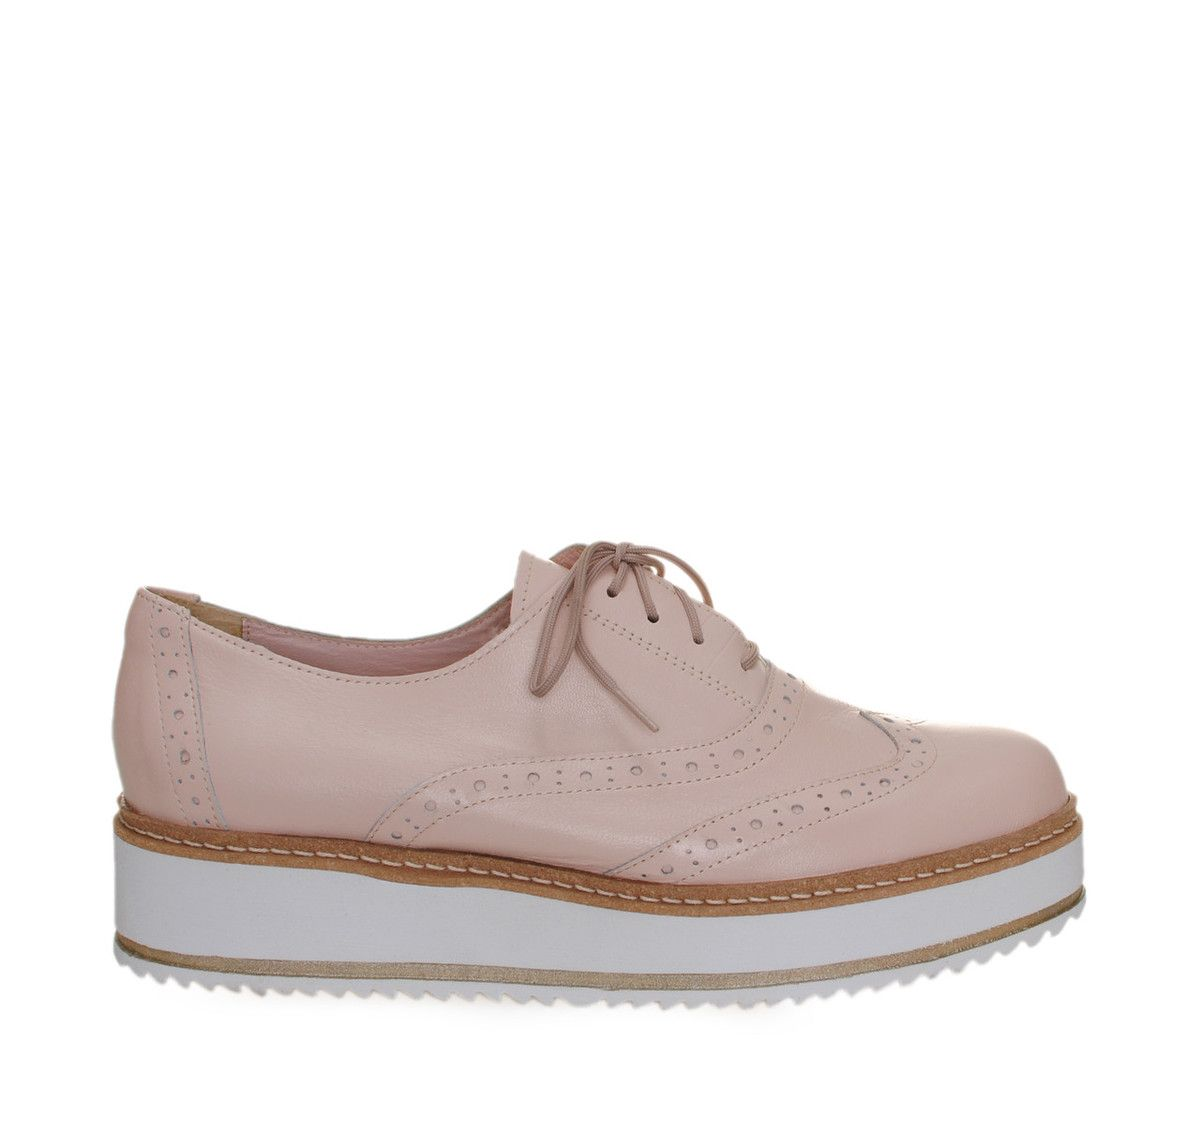 5cdb6aeb136 SAGS Nude Leather Oxford Shoes with Laces. Γυναικεία μπεζ δερμάτινα δίψηδα  παπούτσια με κορδόνια.